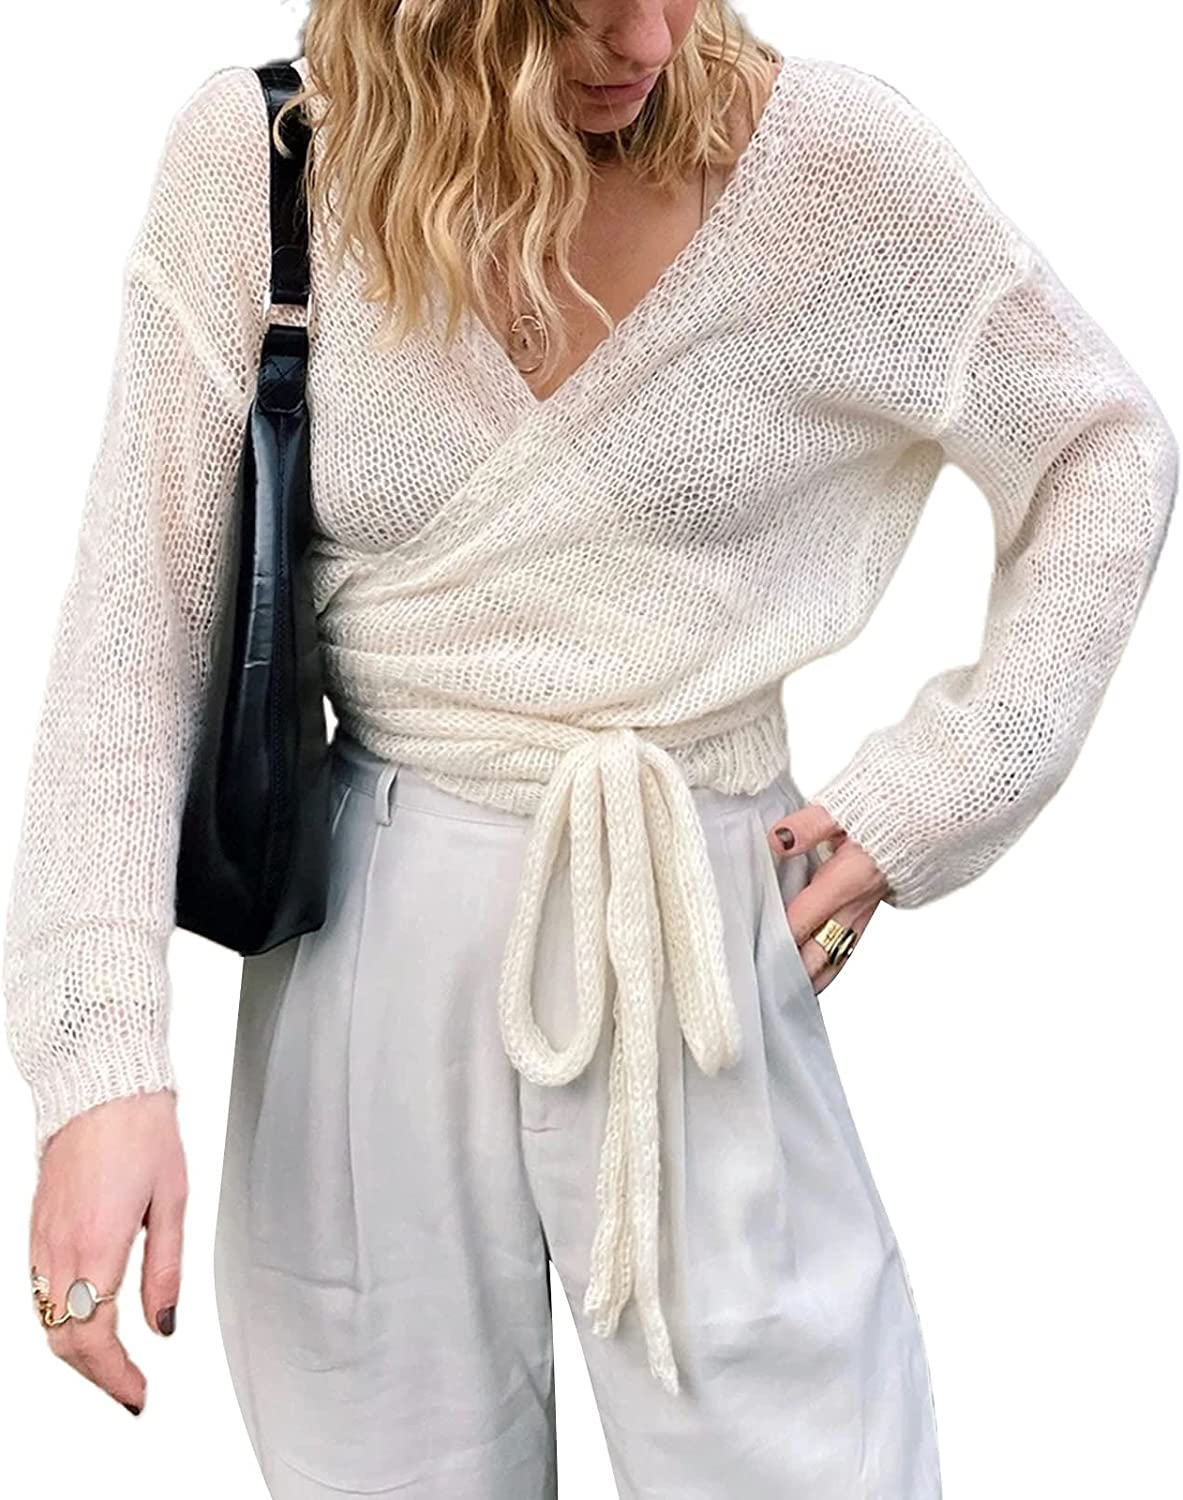 Womens Lightweight Knit Shrug Tie Front Long Sleeve Wrap Open Front Cardigan Top